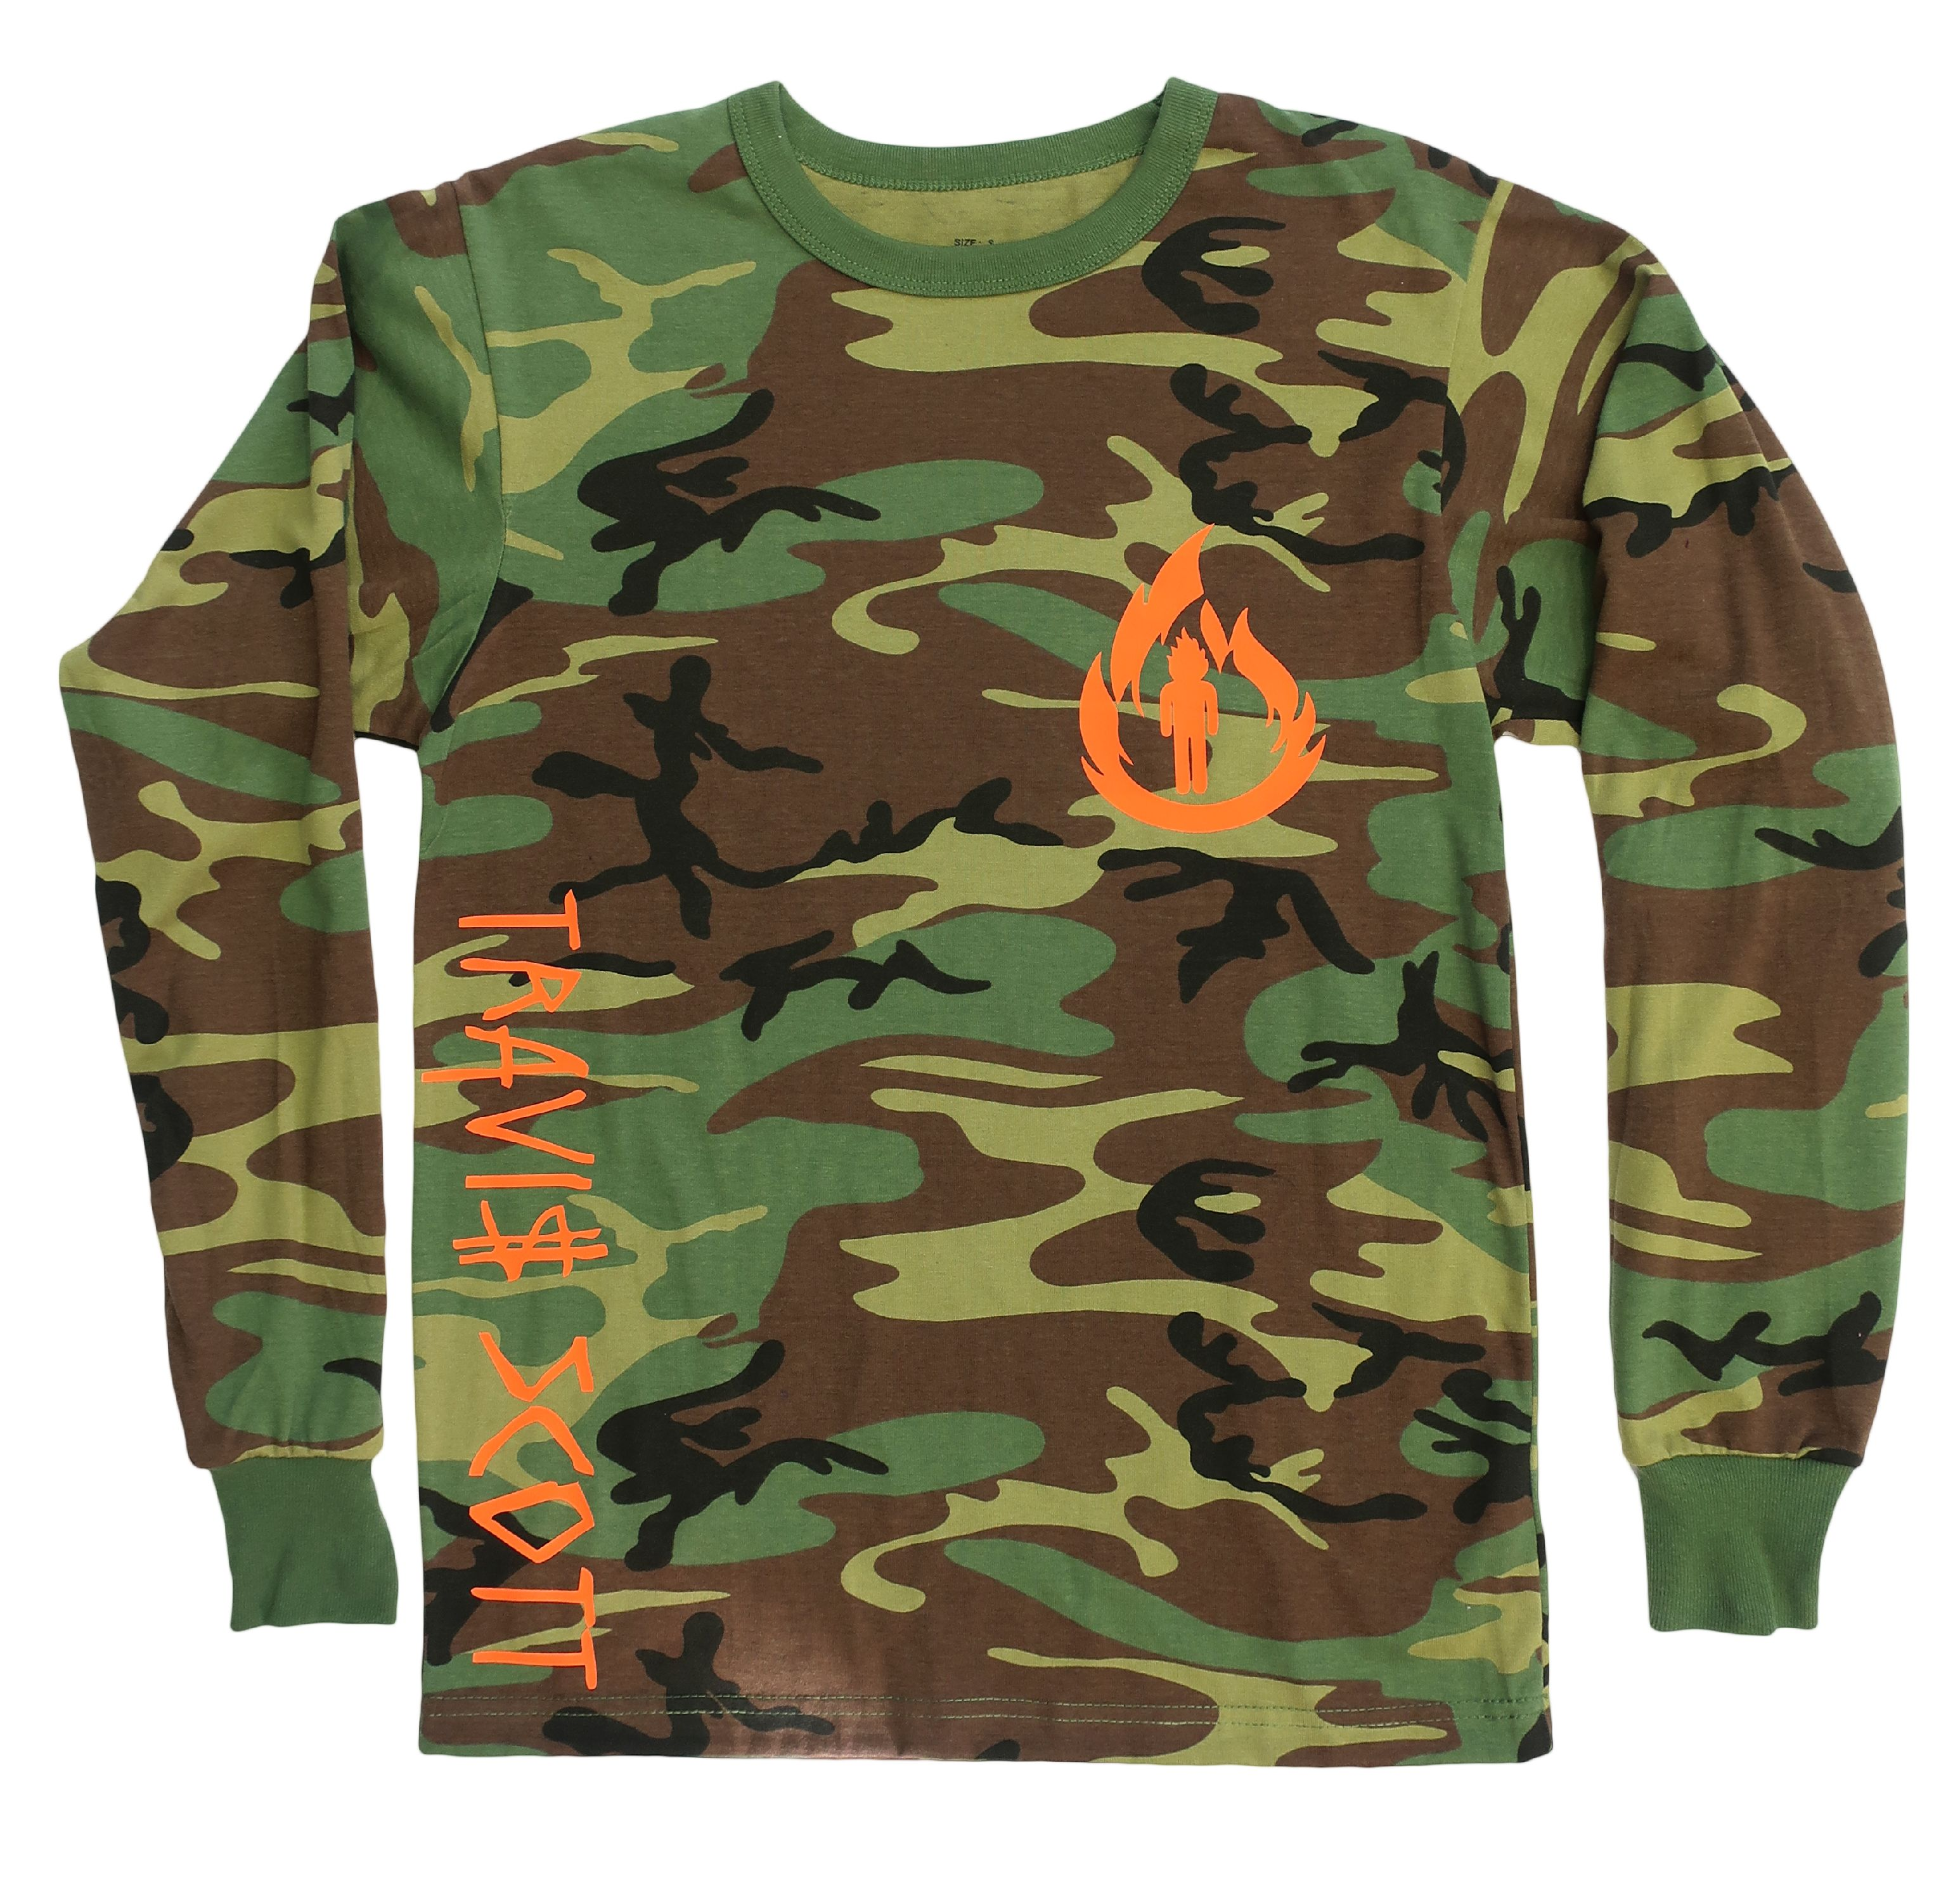 Travis Scott, La Flame Logo, Camouflage Long Sleeve Shirt (Orange Logo)